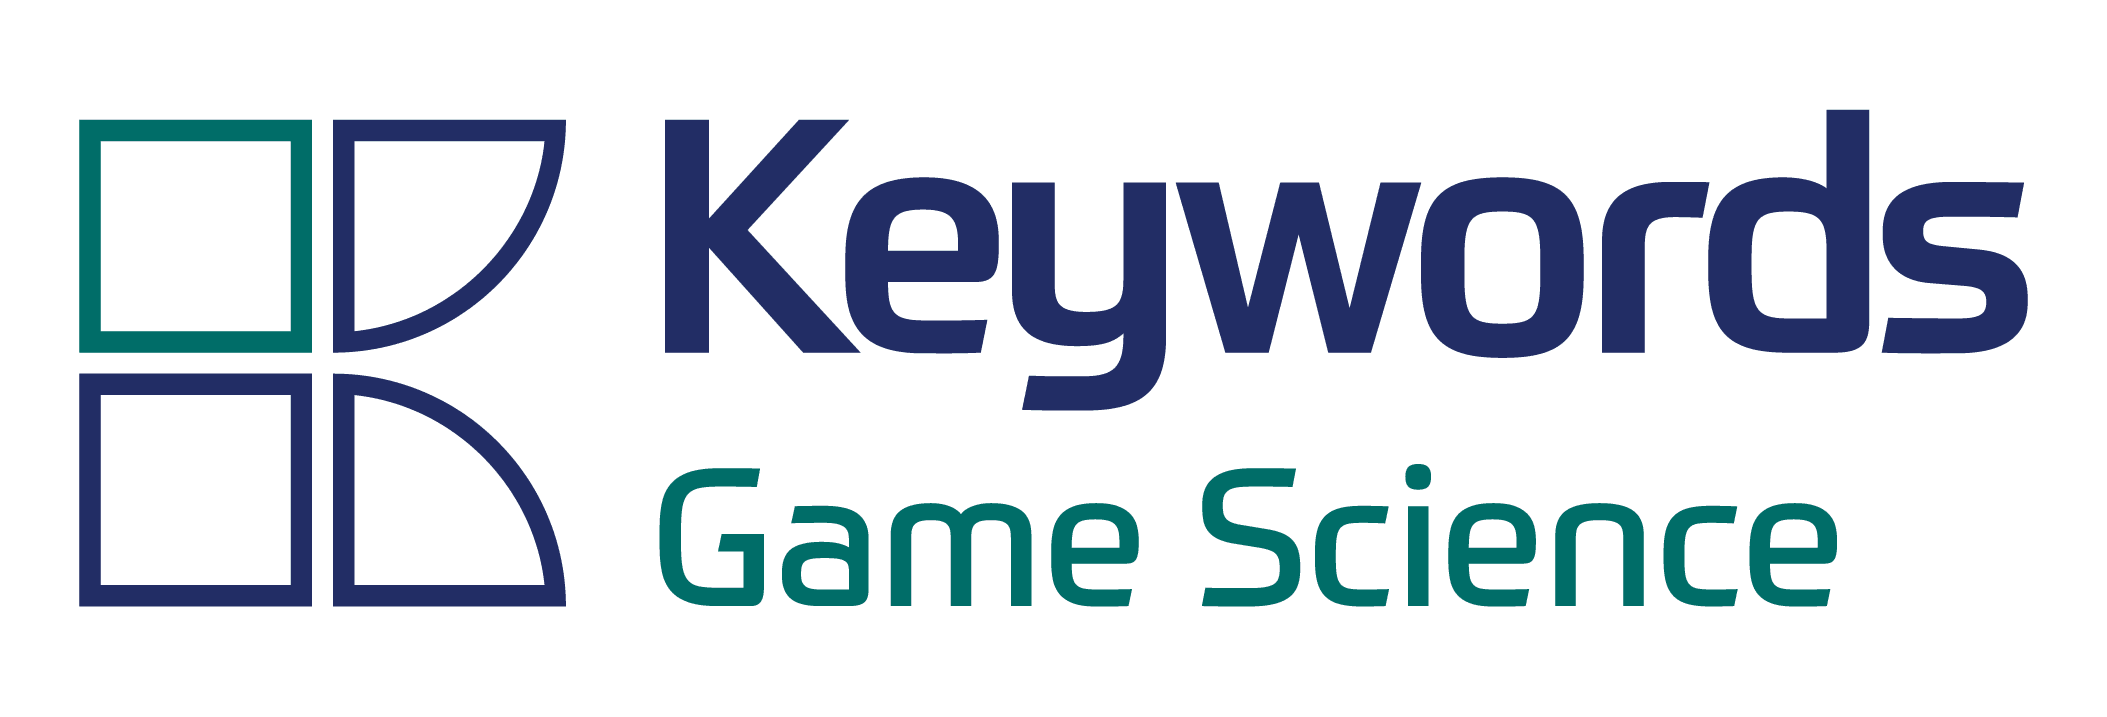 Keywords Studios Game Science Services Logo 2019